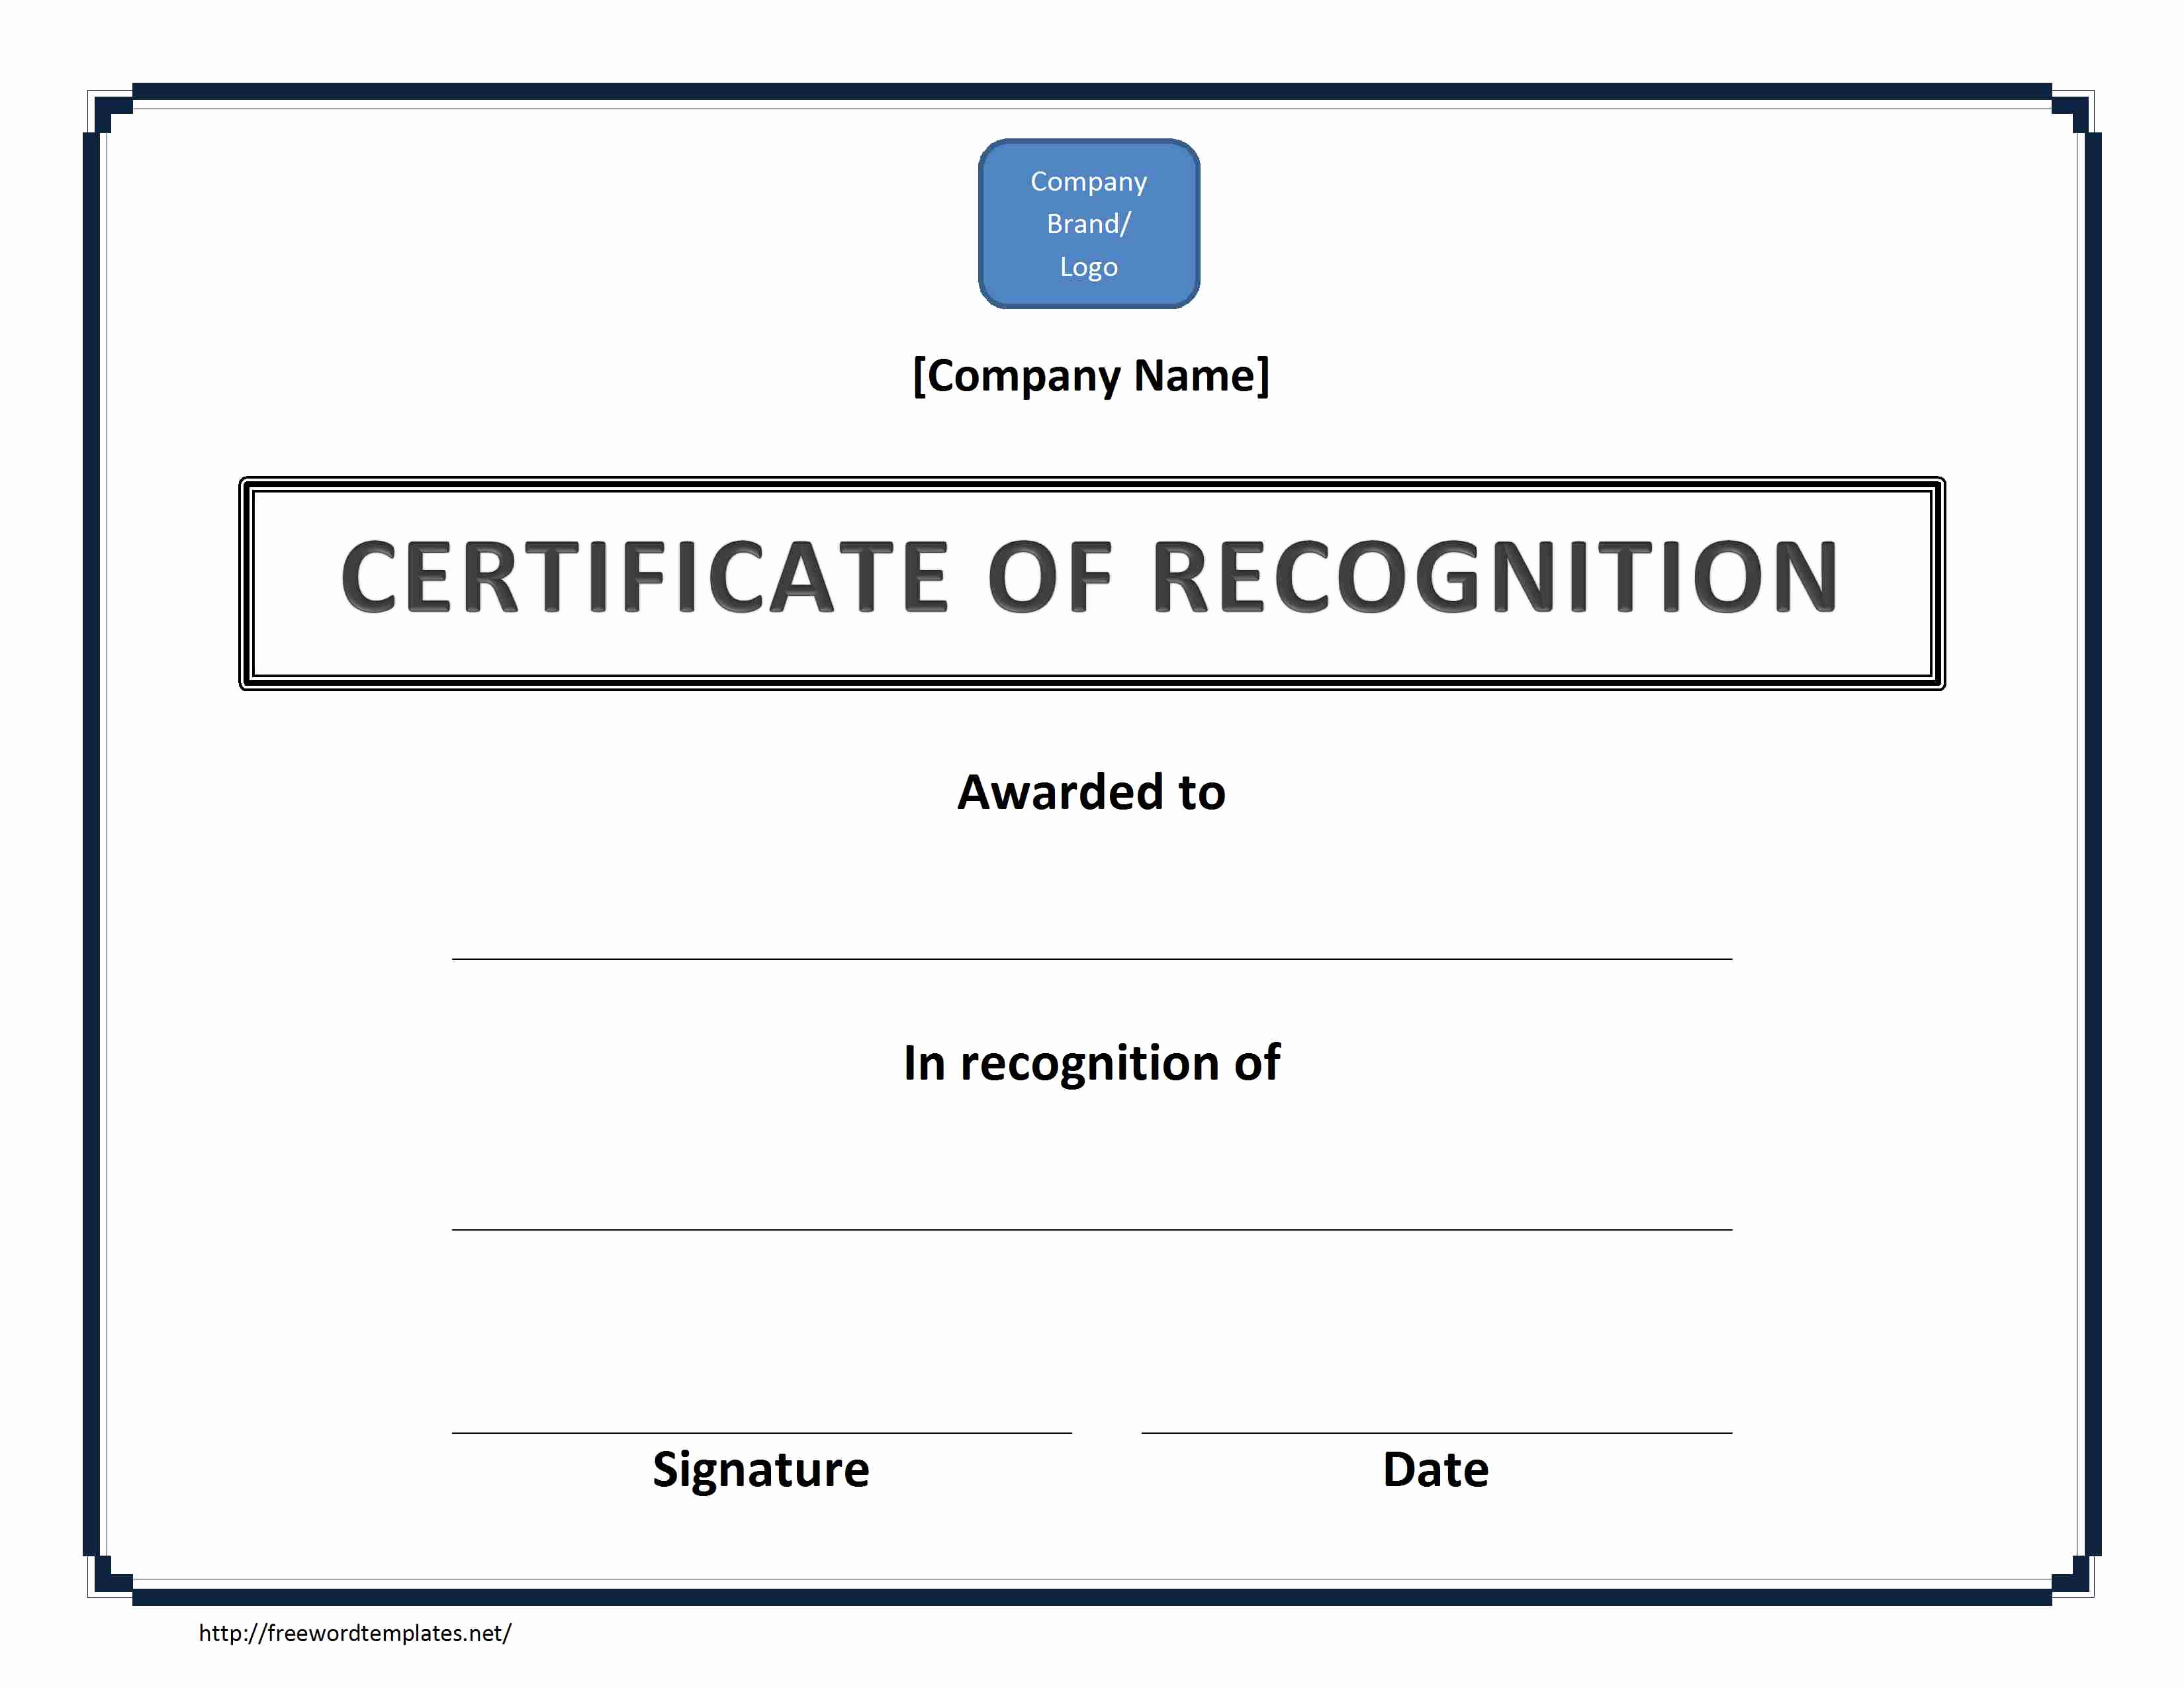 Certificate Of Recognition Template Inspirational Certificate Of Recognition